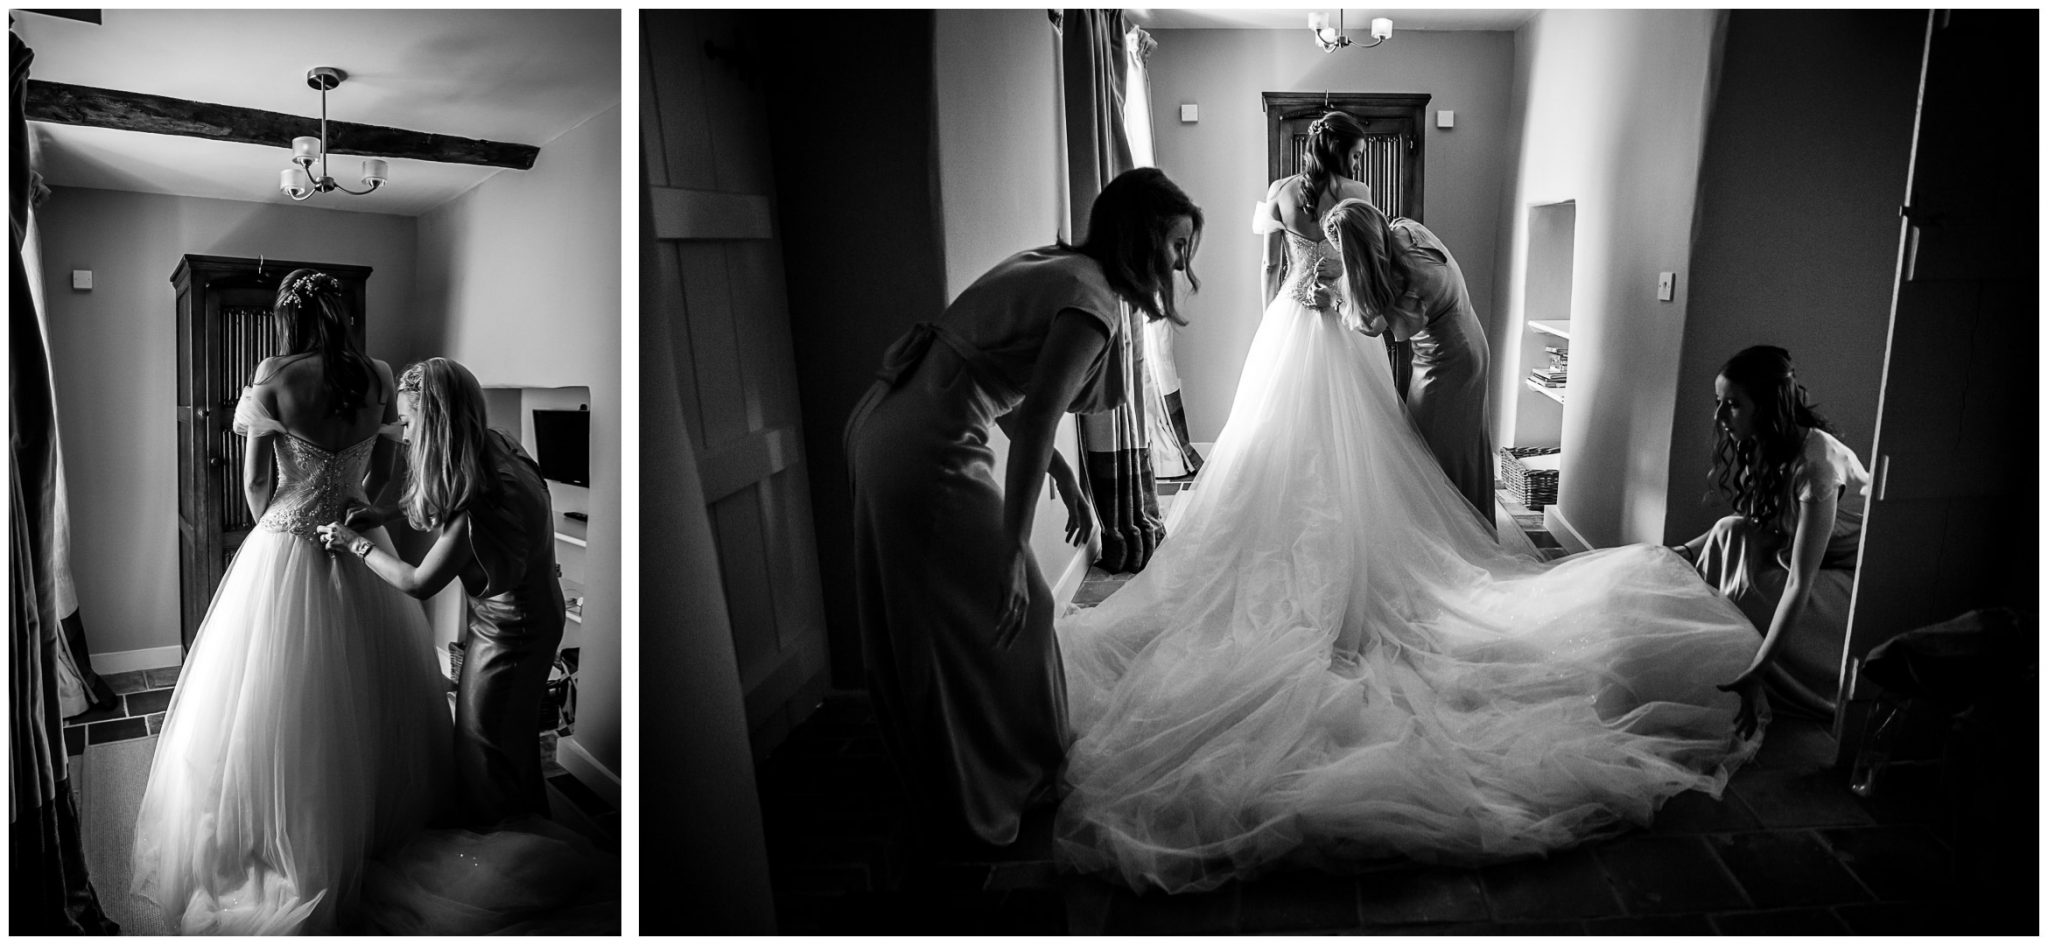 The bride gets into her wedding dress with help from her bridesmaids